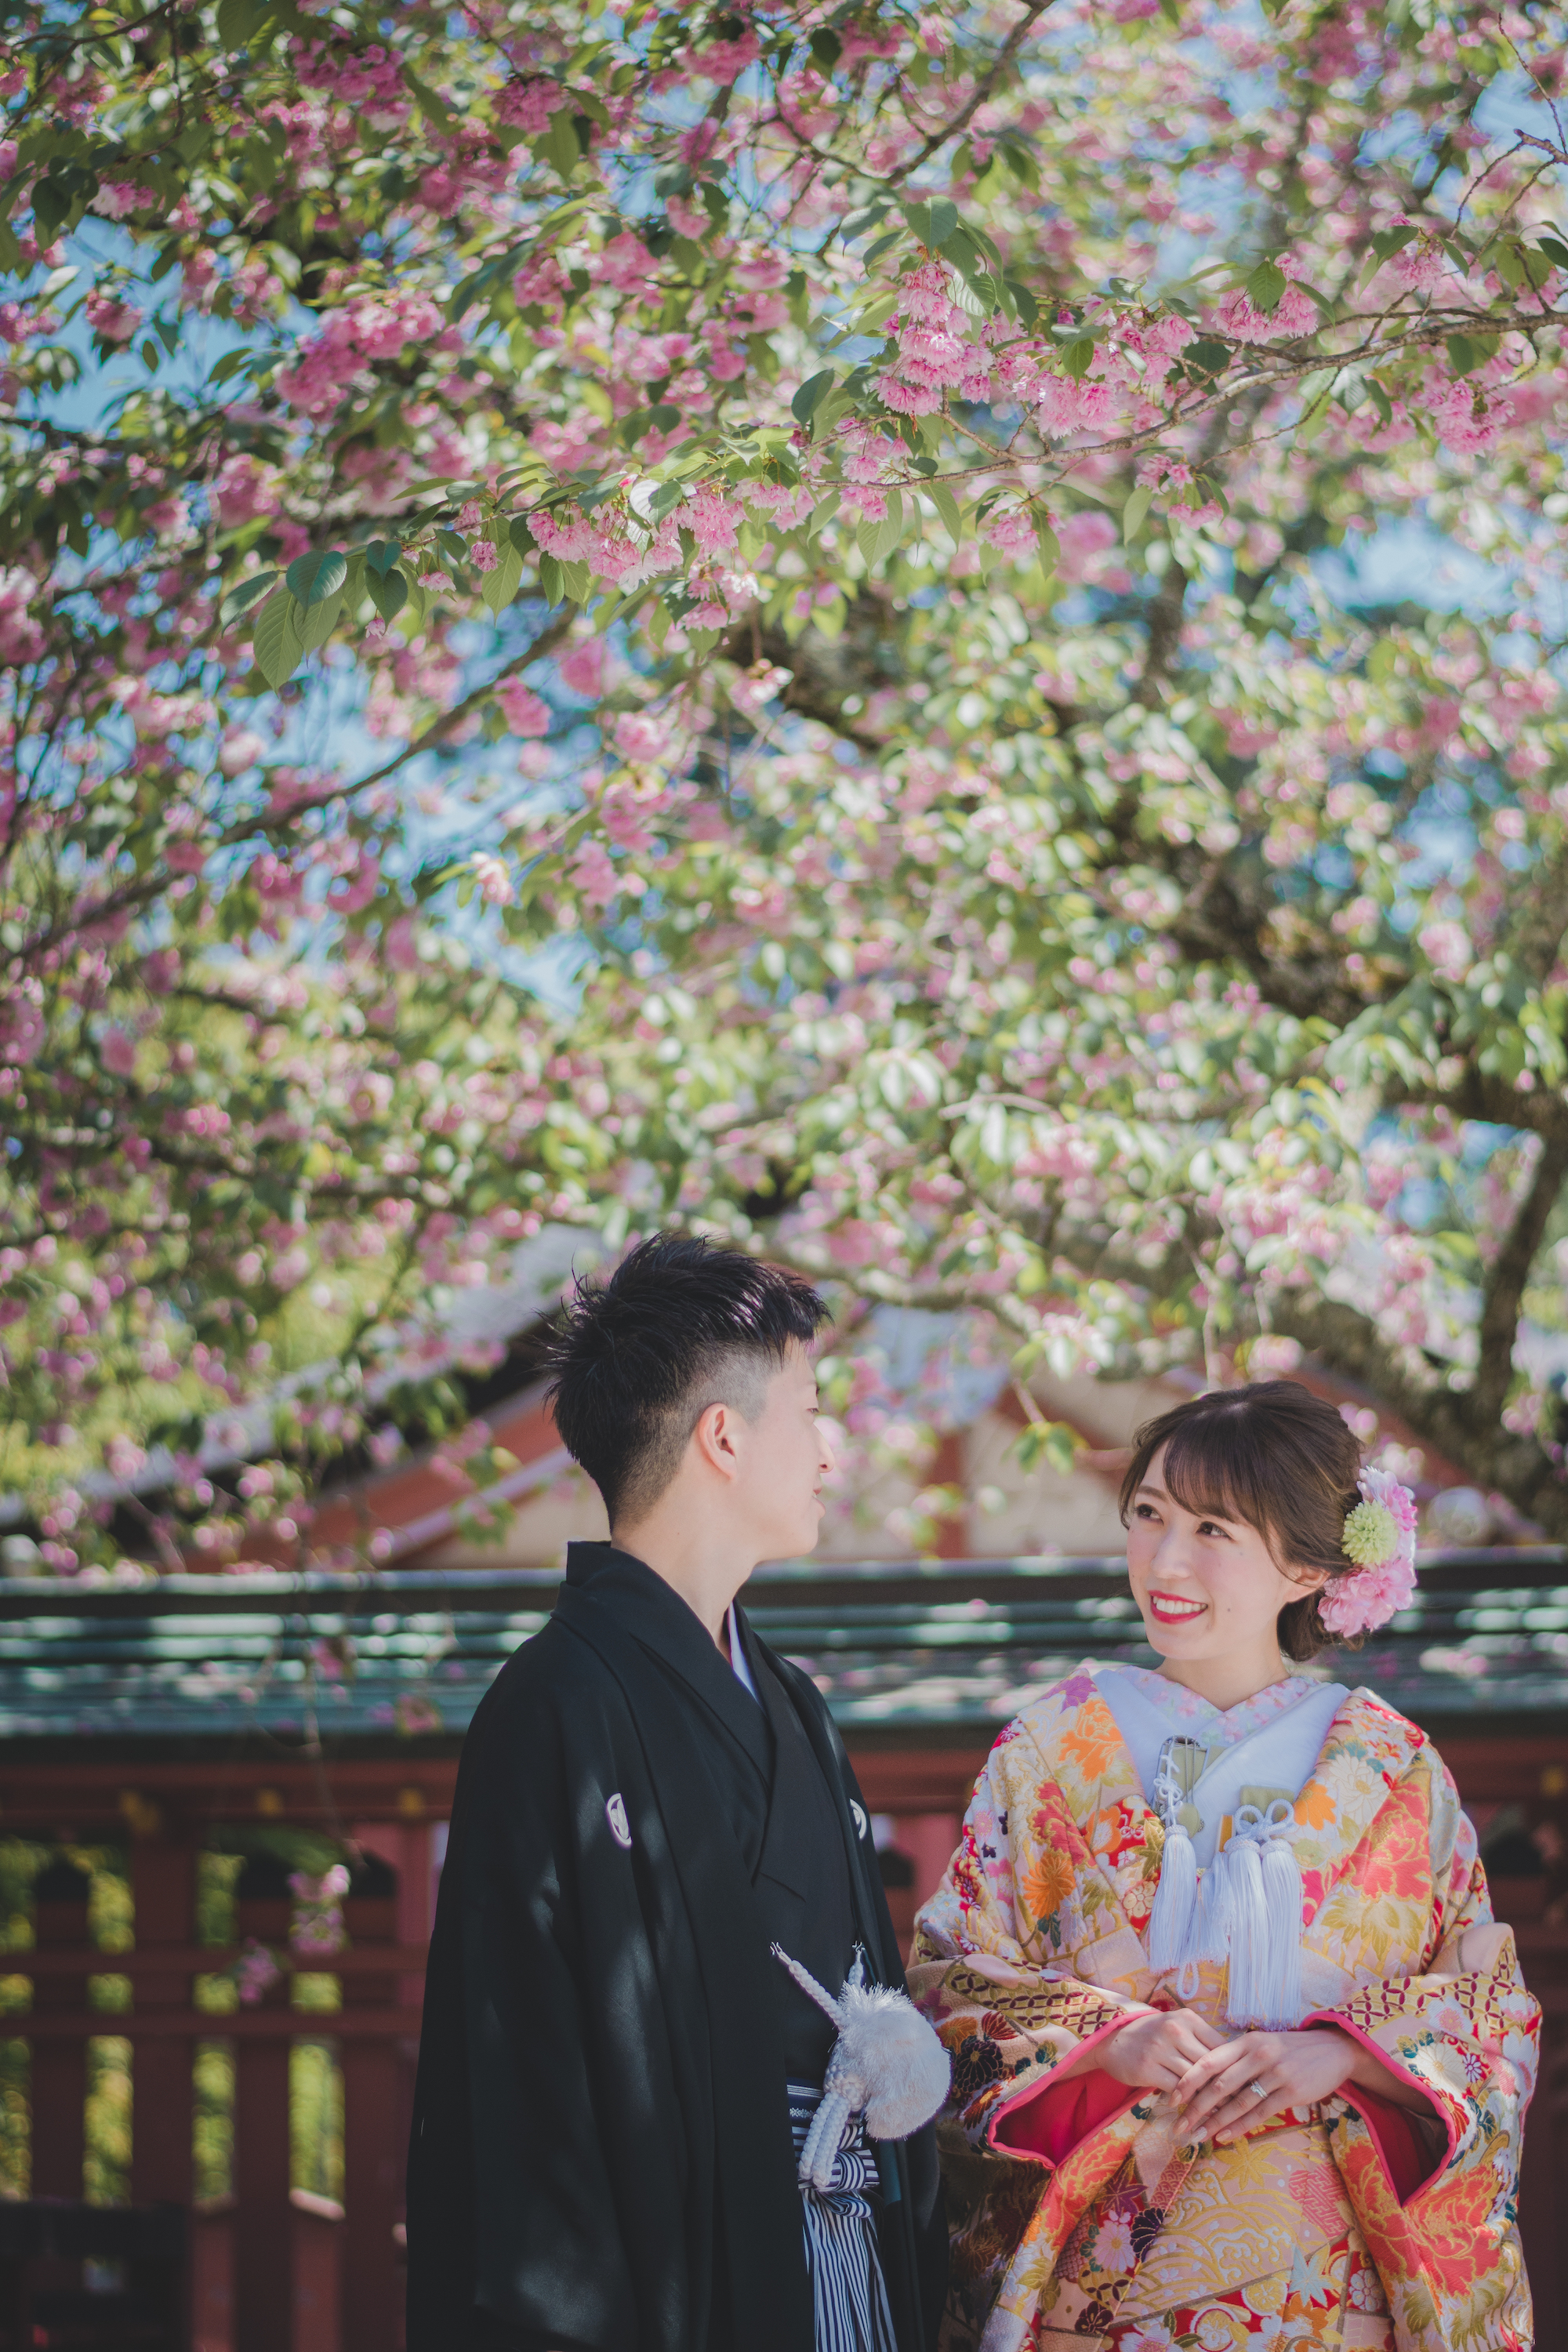 Gorgeous Japanese Wedding Photos at a Garden, Temple, or Shrine